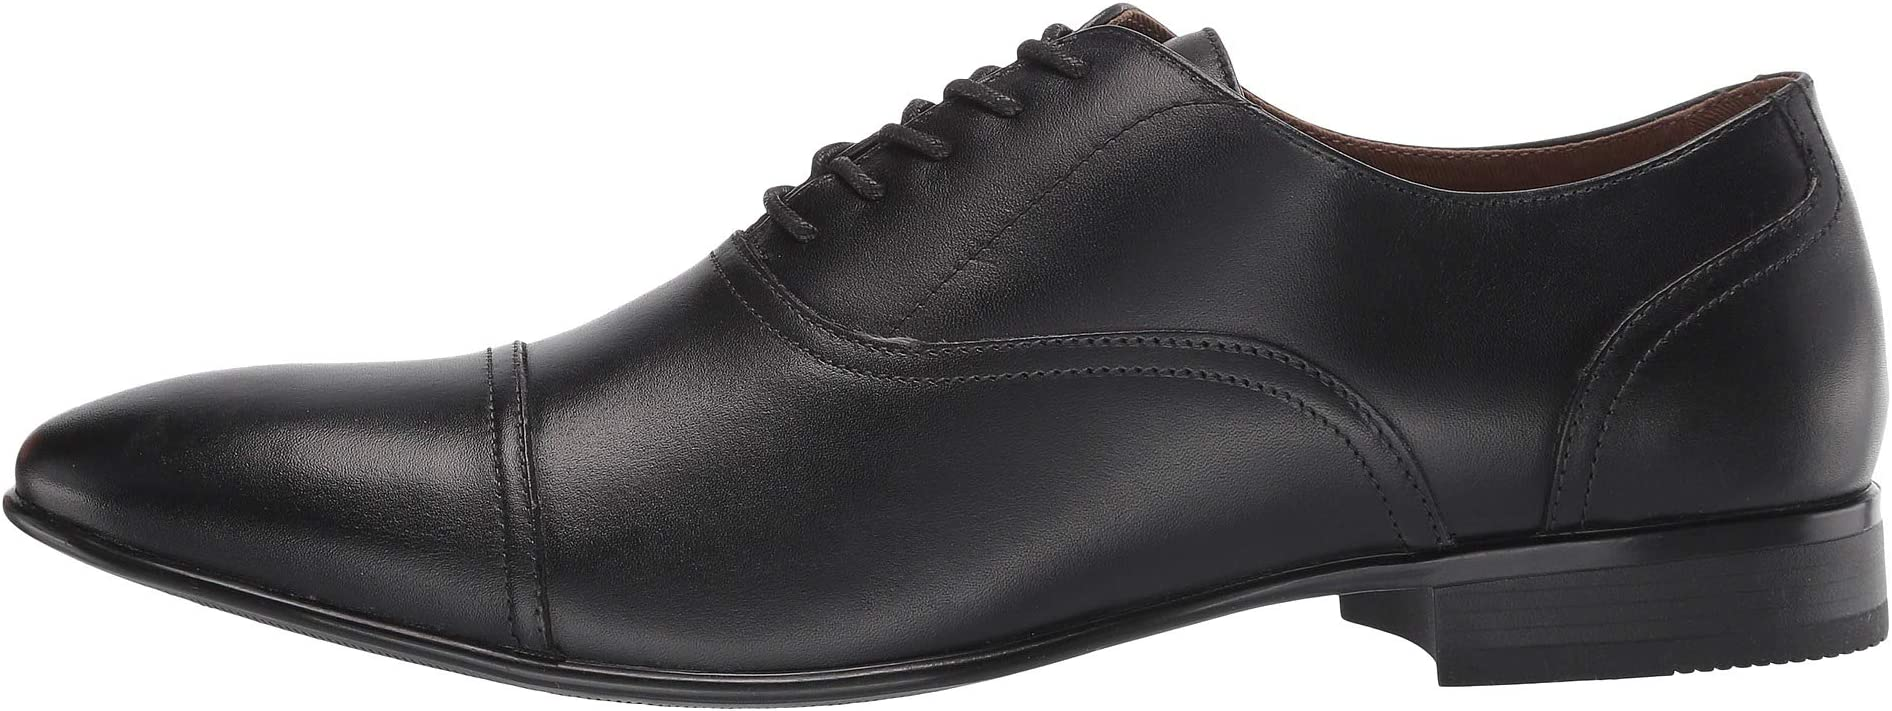 ALDO Olarelia | Men's shoes | 2020 Newest